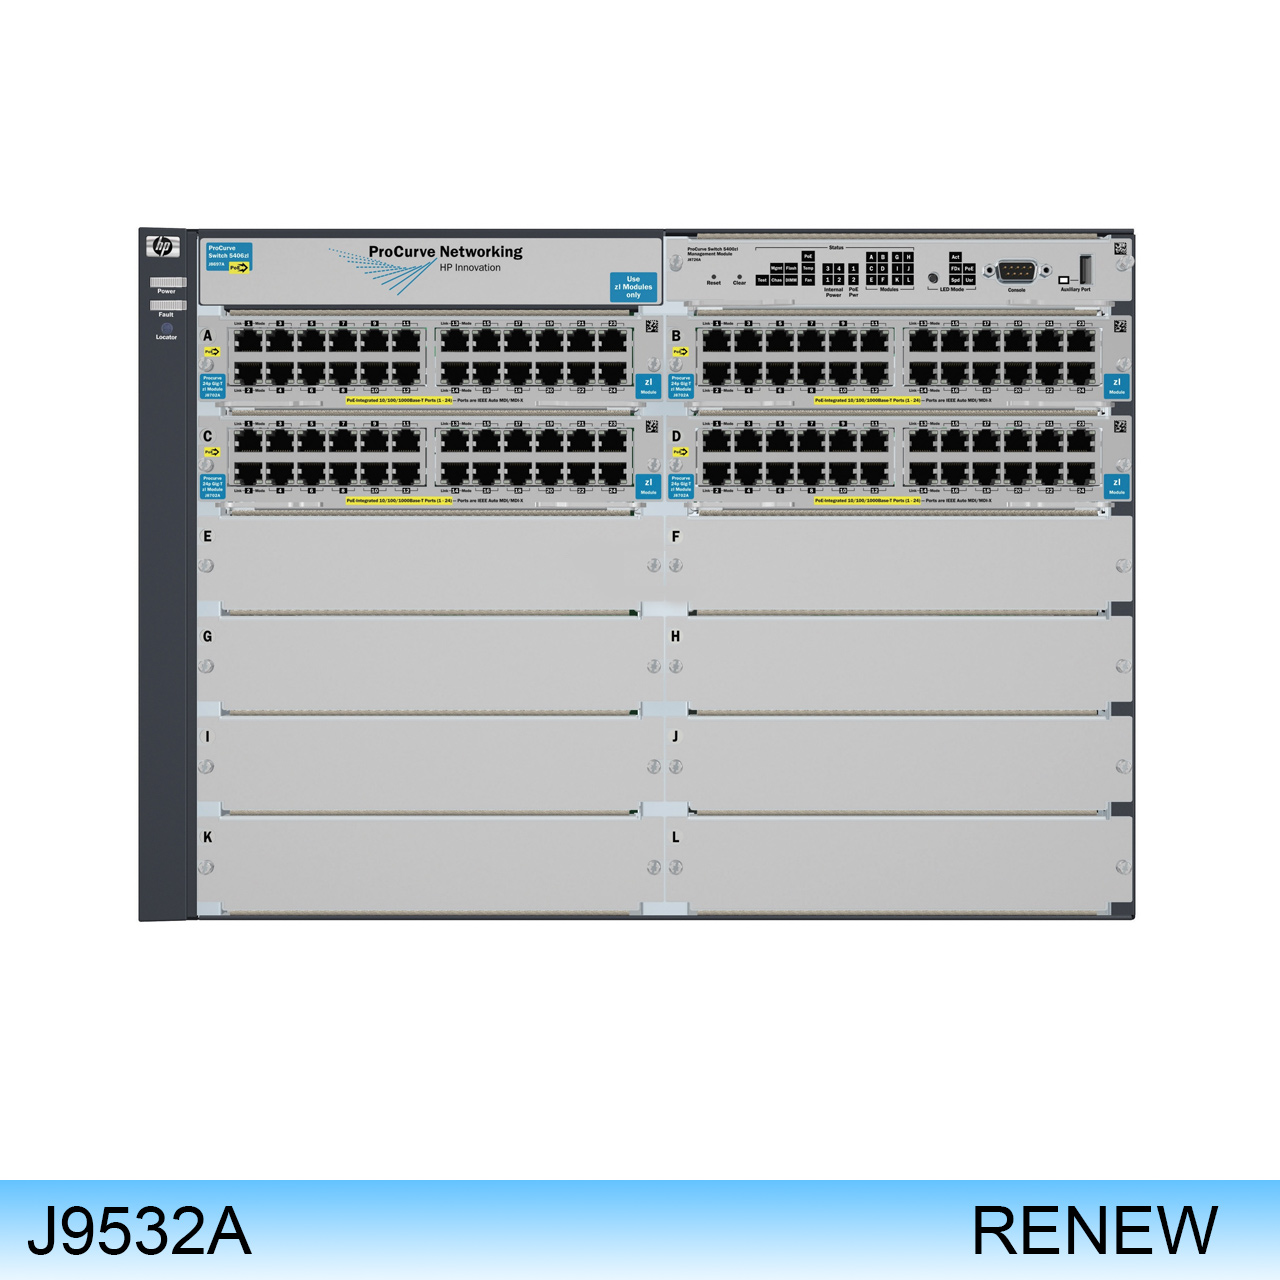 J9532A | HP PROCURVE SWITCH E5412-92G-PoE+/2XG-SFP+ v2 zl Premium Software -- RENEW